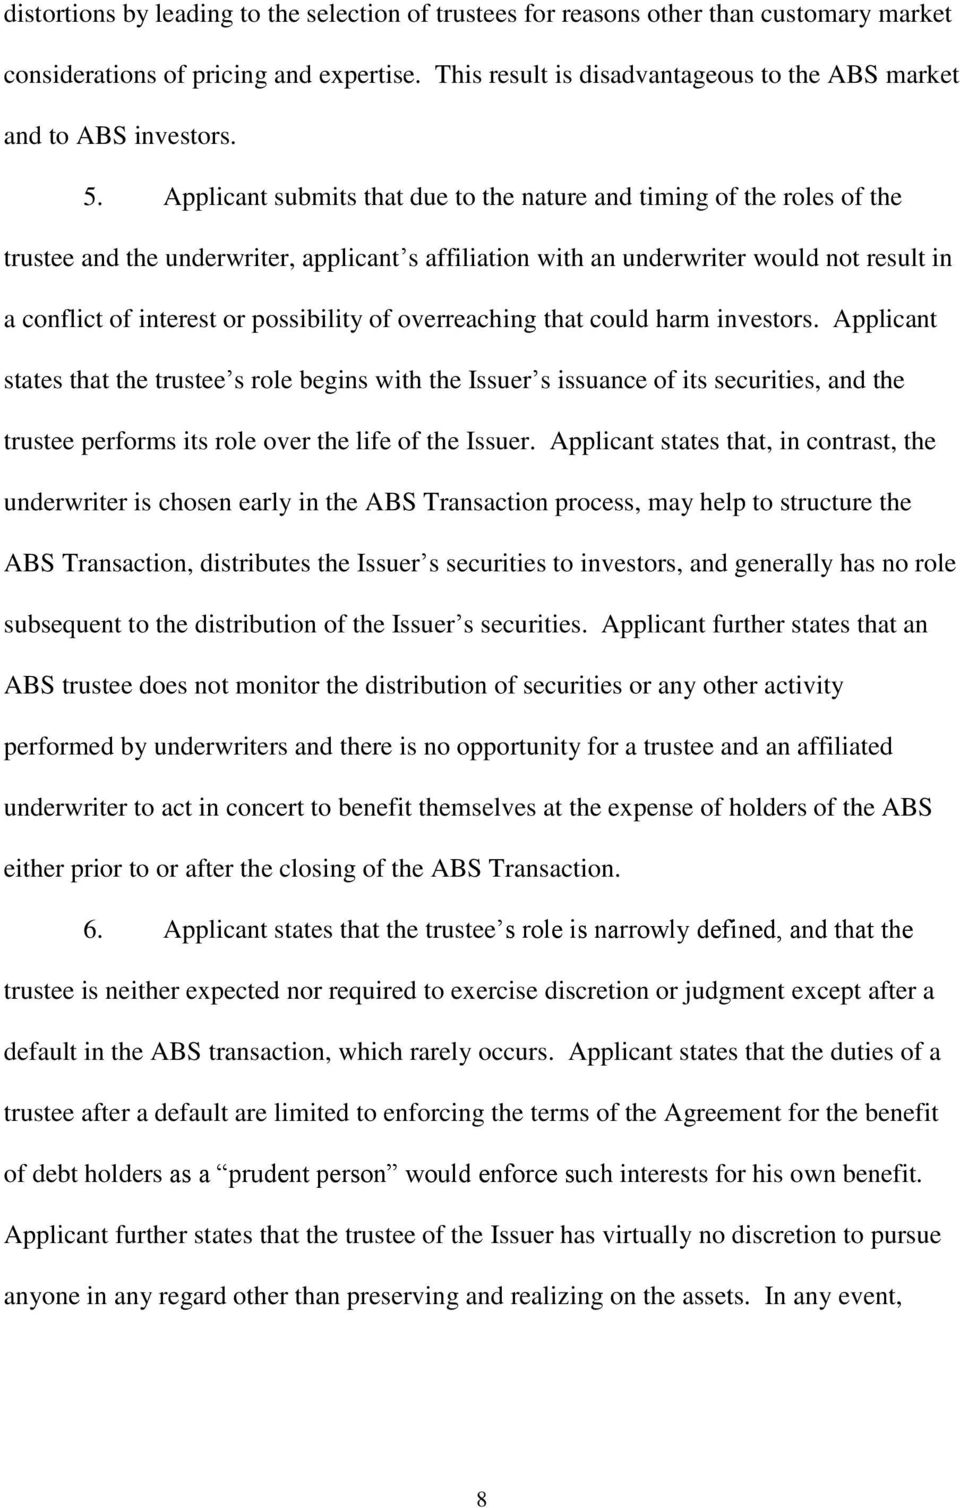 Applicant submits that due to the nature and timing of the roles of the trustee and the underwriter, applicant s affiliation with an underwriter would not result in a conflict of interest or